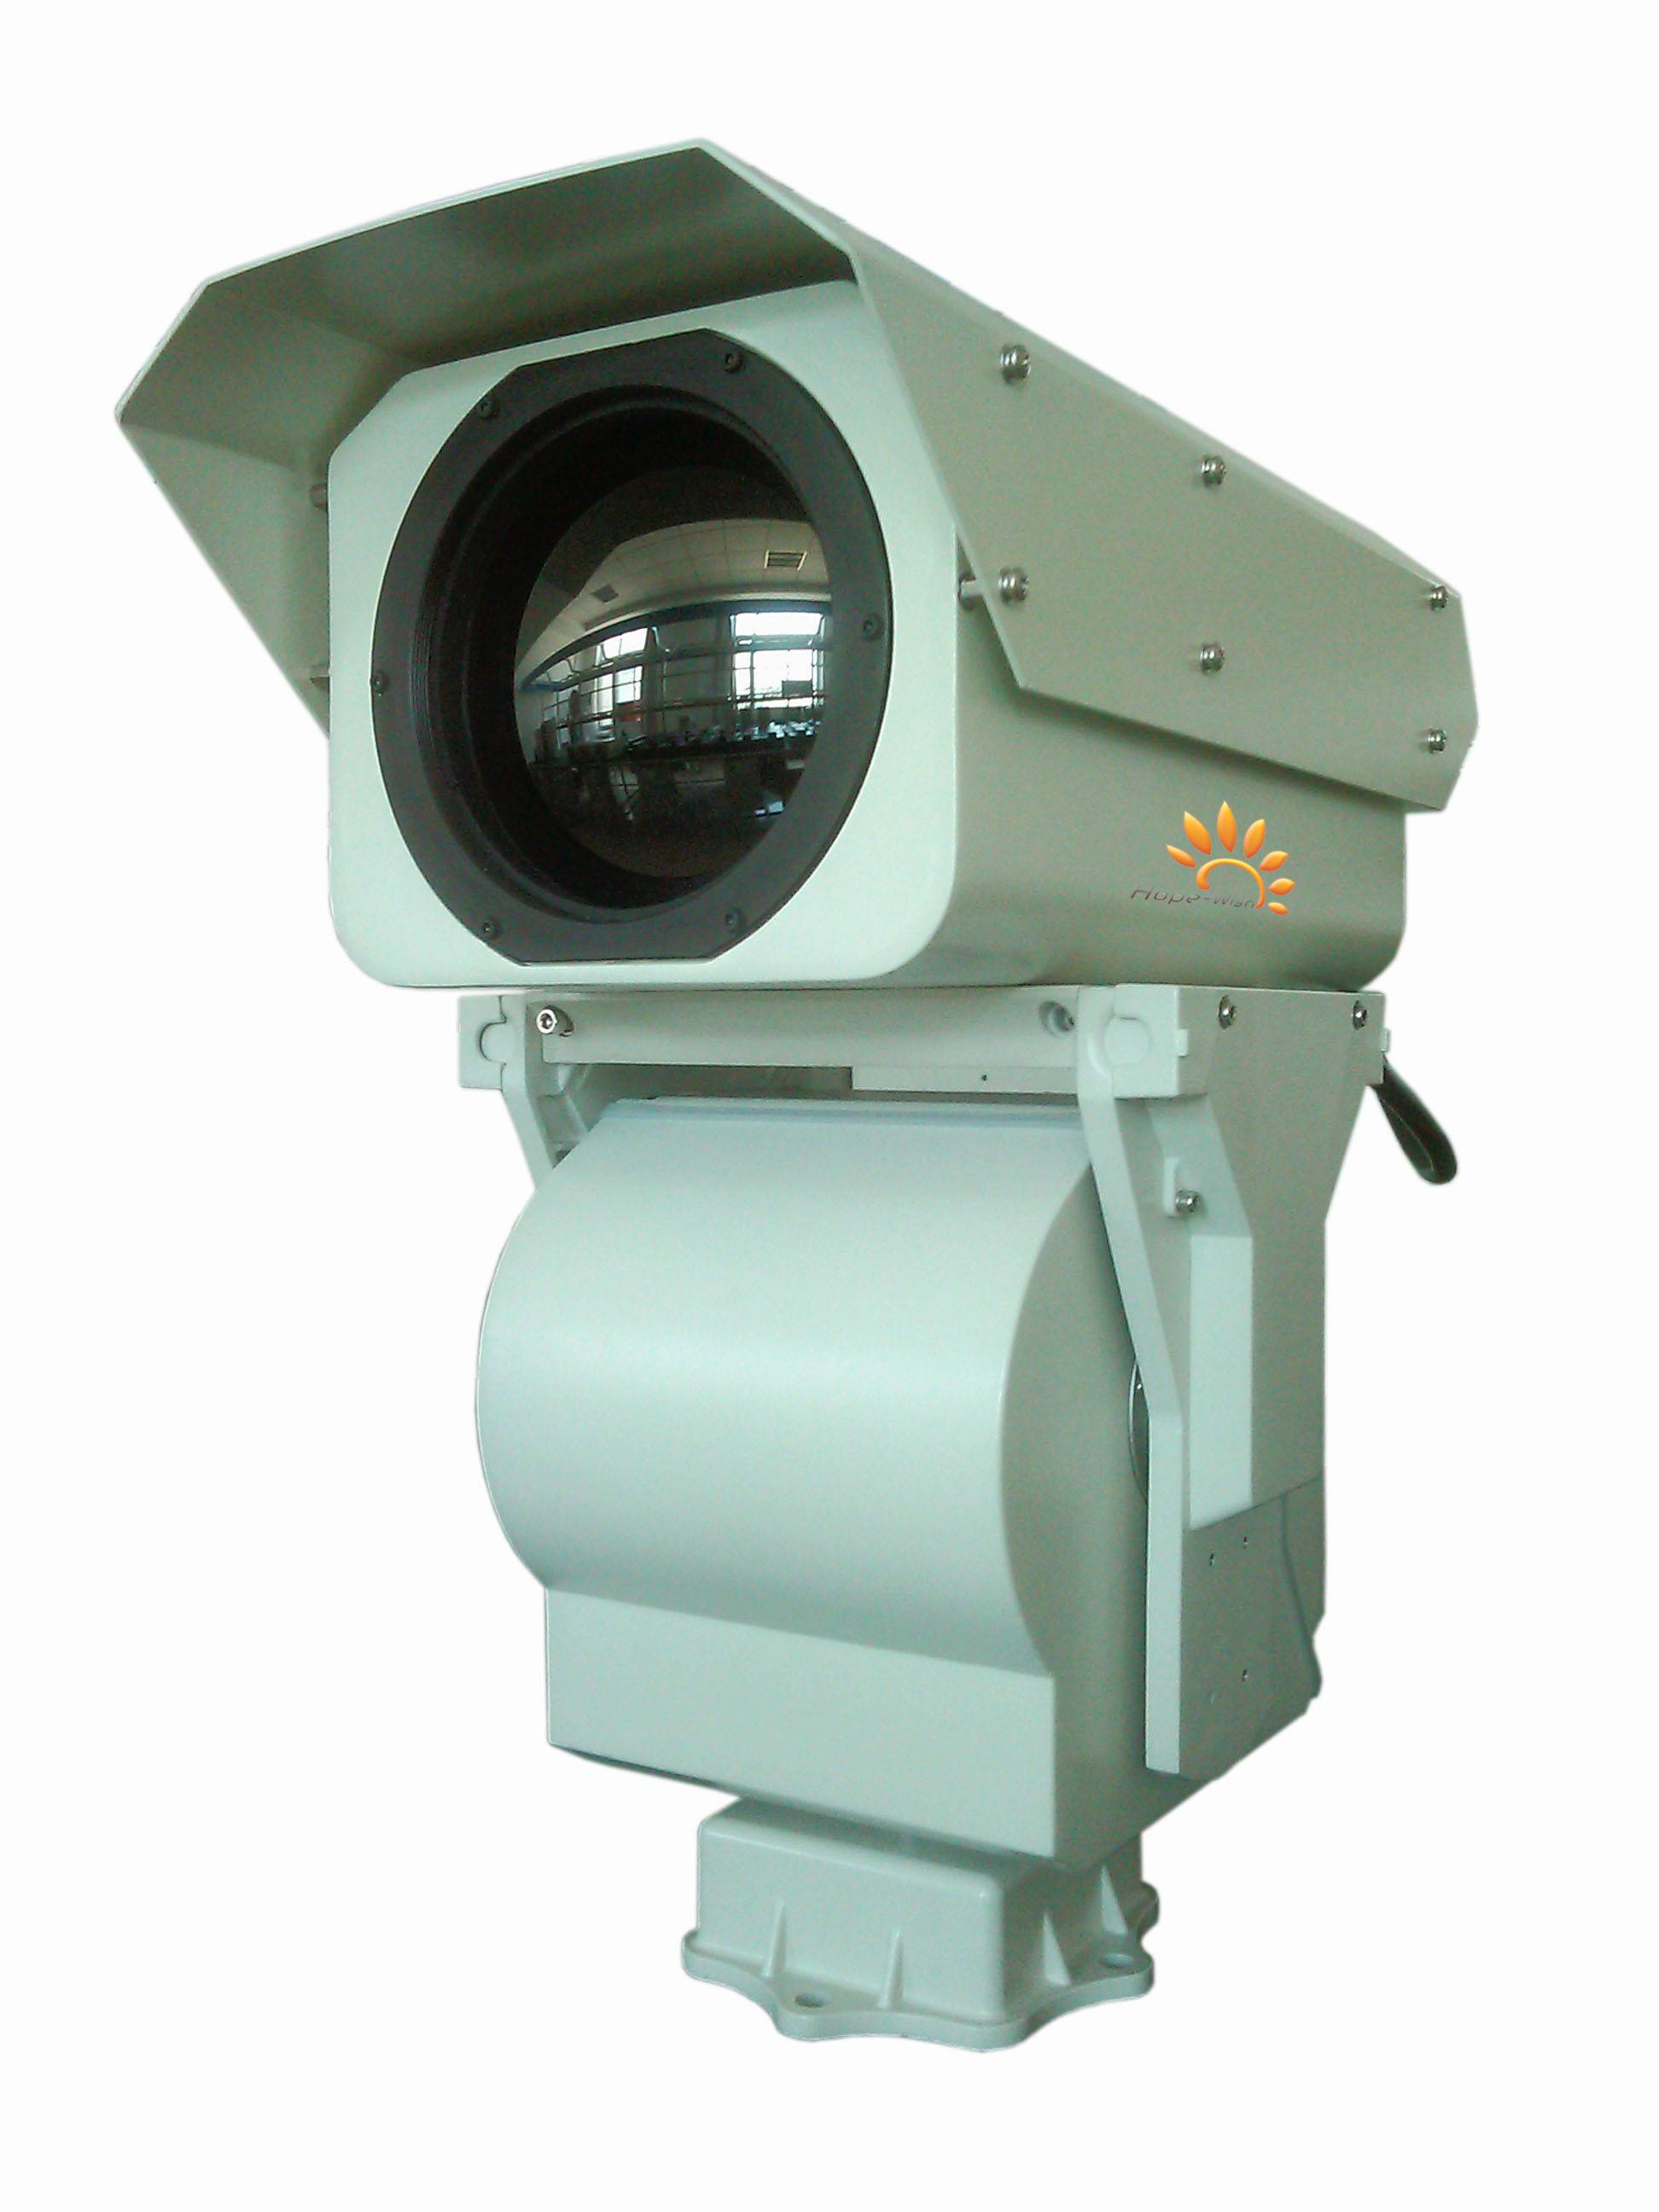 Zoom Thermal Camera